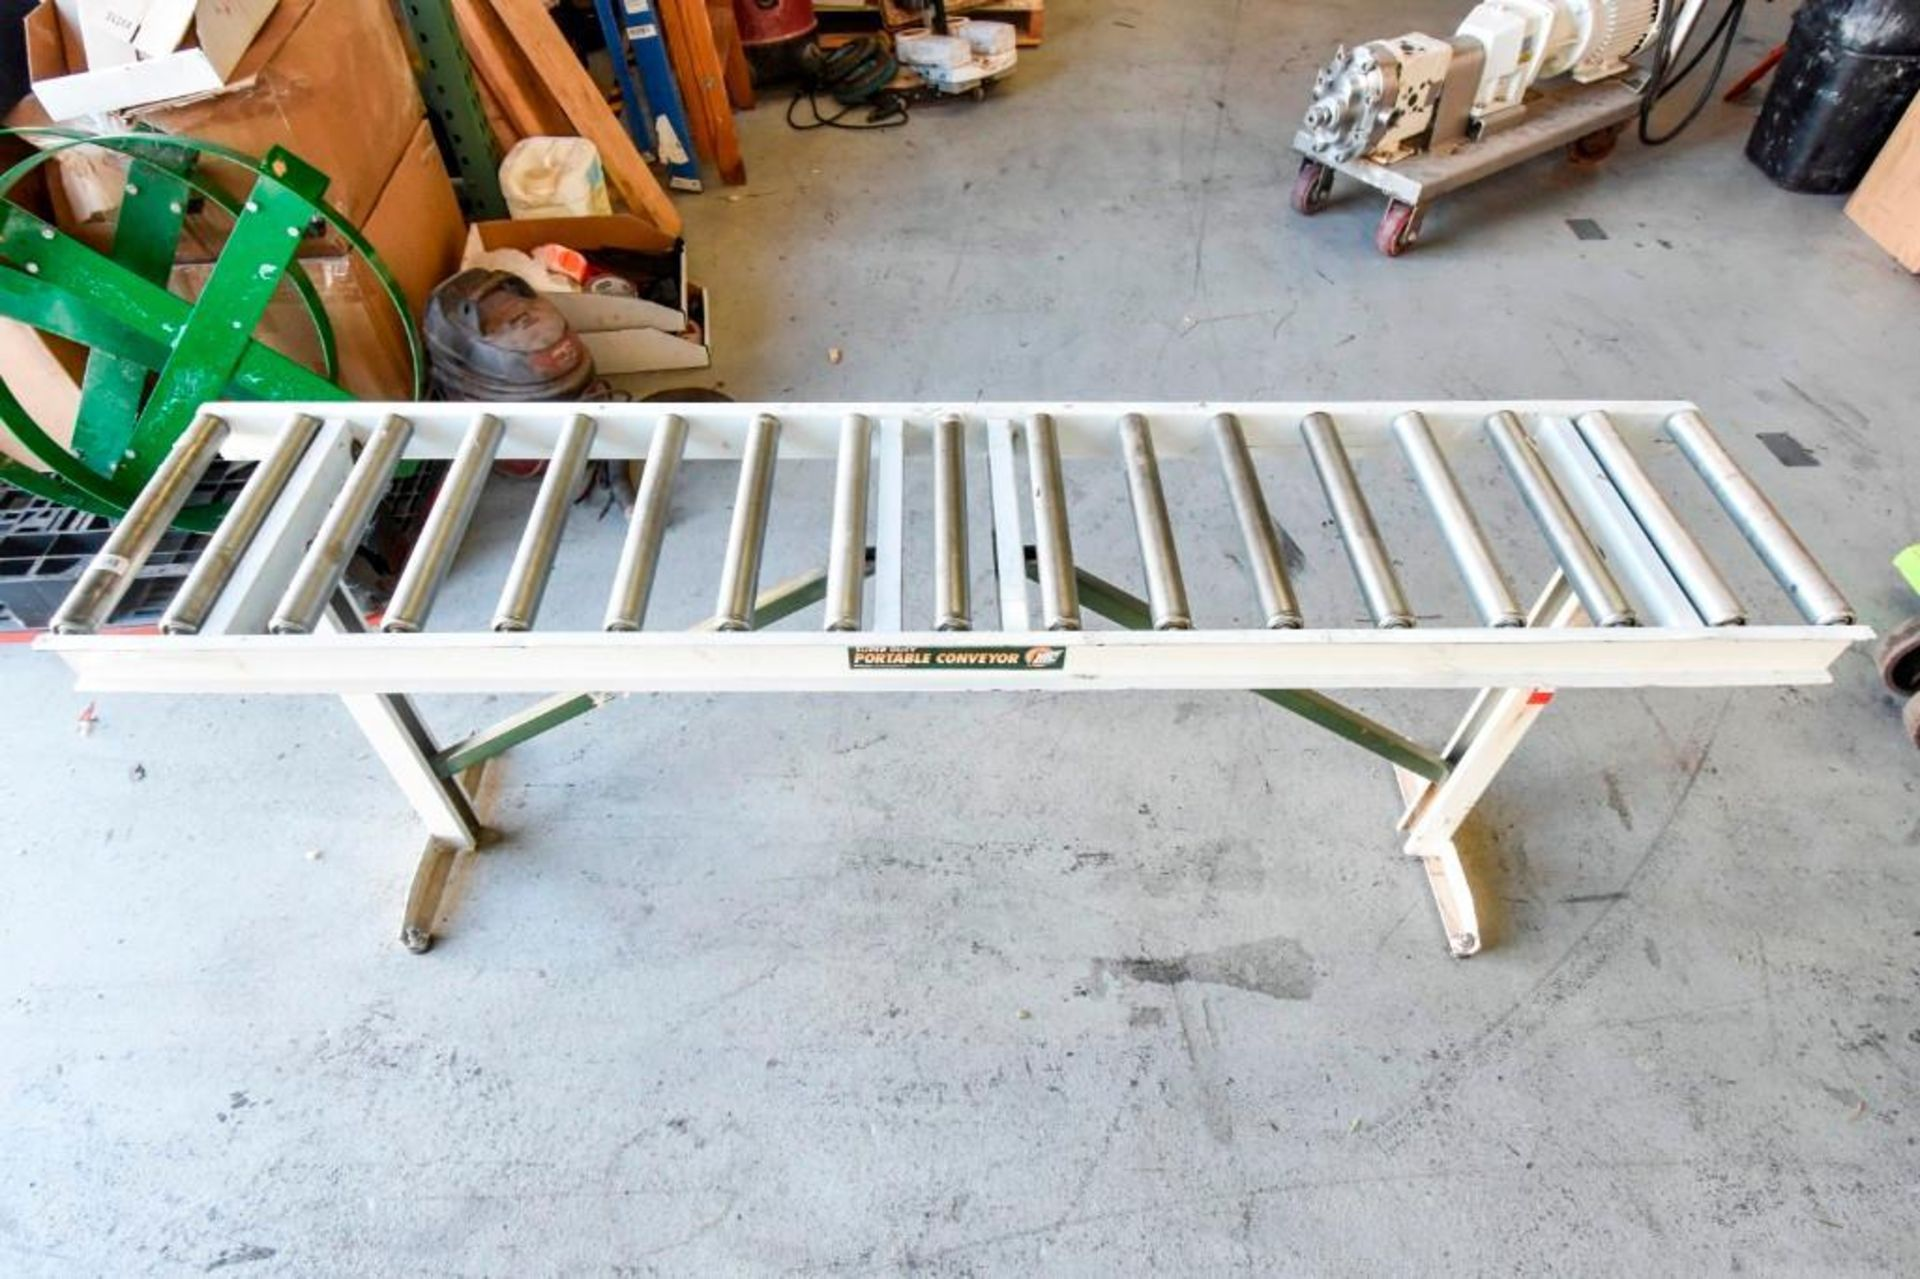 Super Duty Portable Folding Roller Conveyor 5'7'' - Image 4 of 11